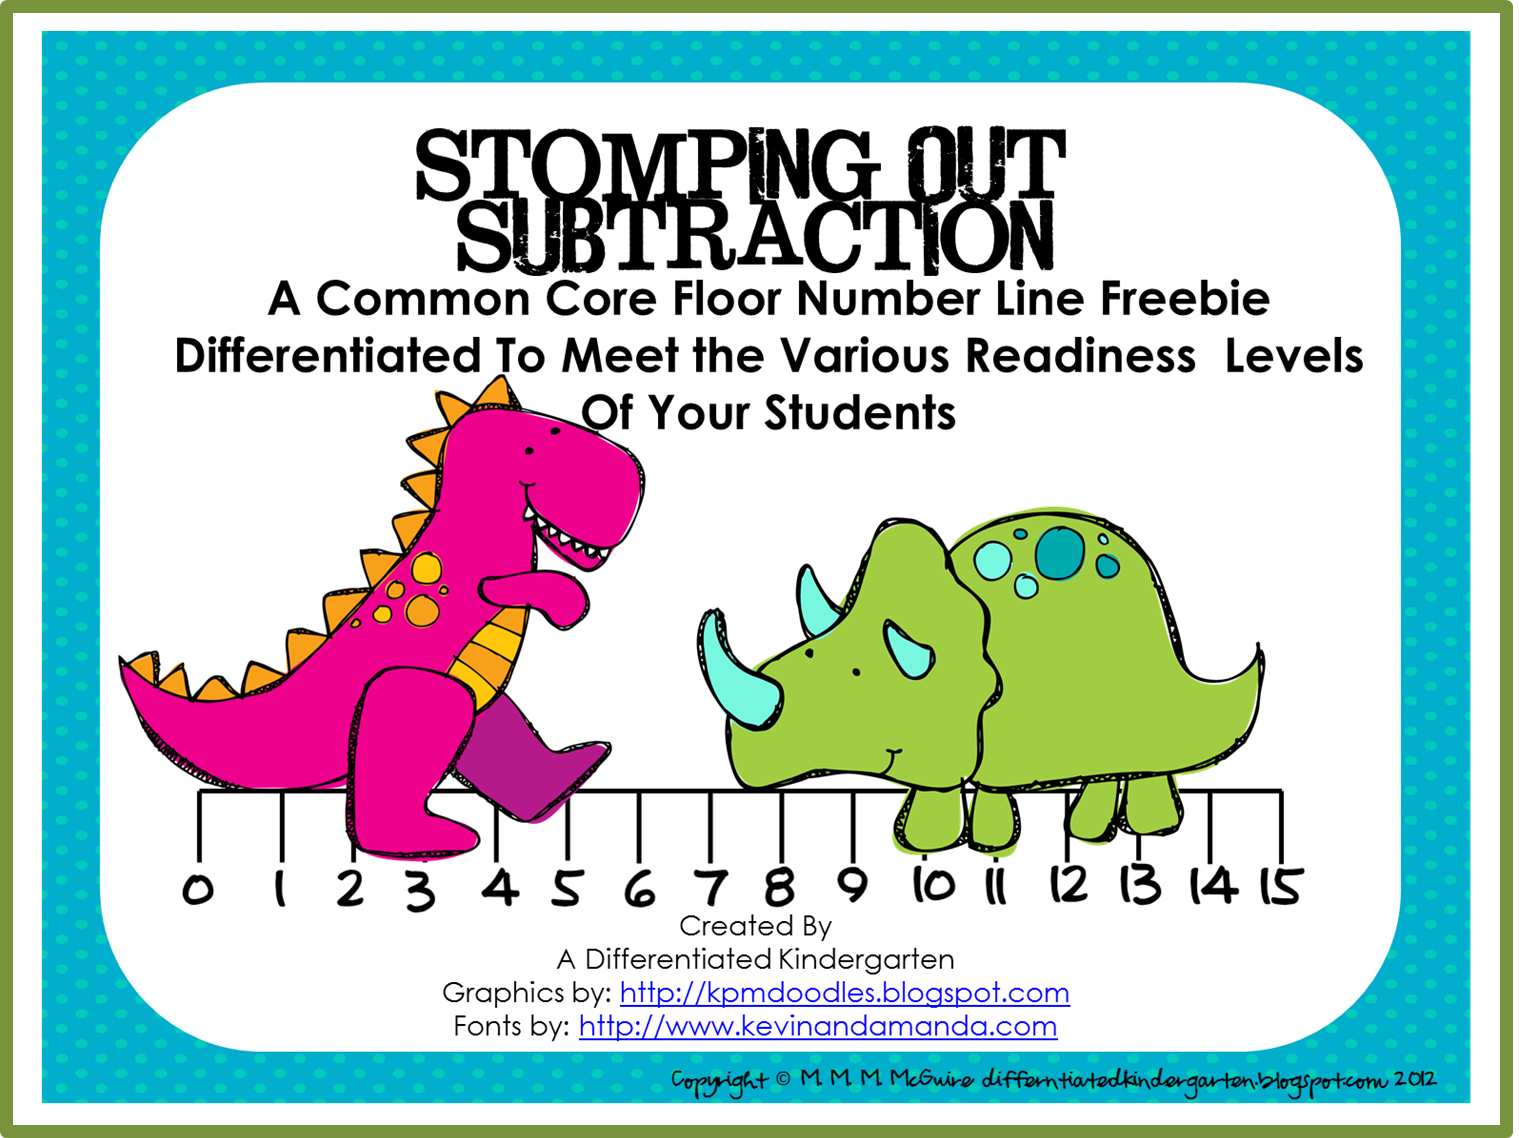 worksheet Subtraction With Number Line stomping out subtraction and a differentiated freebie that meets while back when i first started this blog put instructions on how to make floor sized 100s chartnumberl